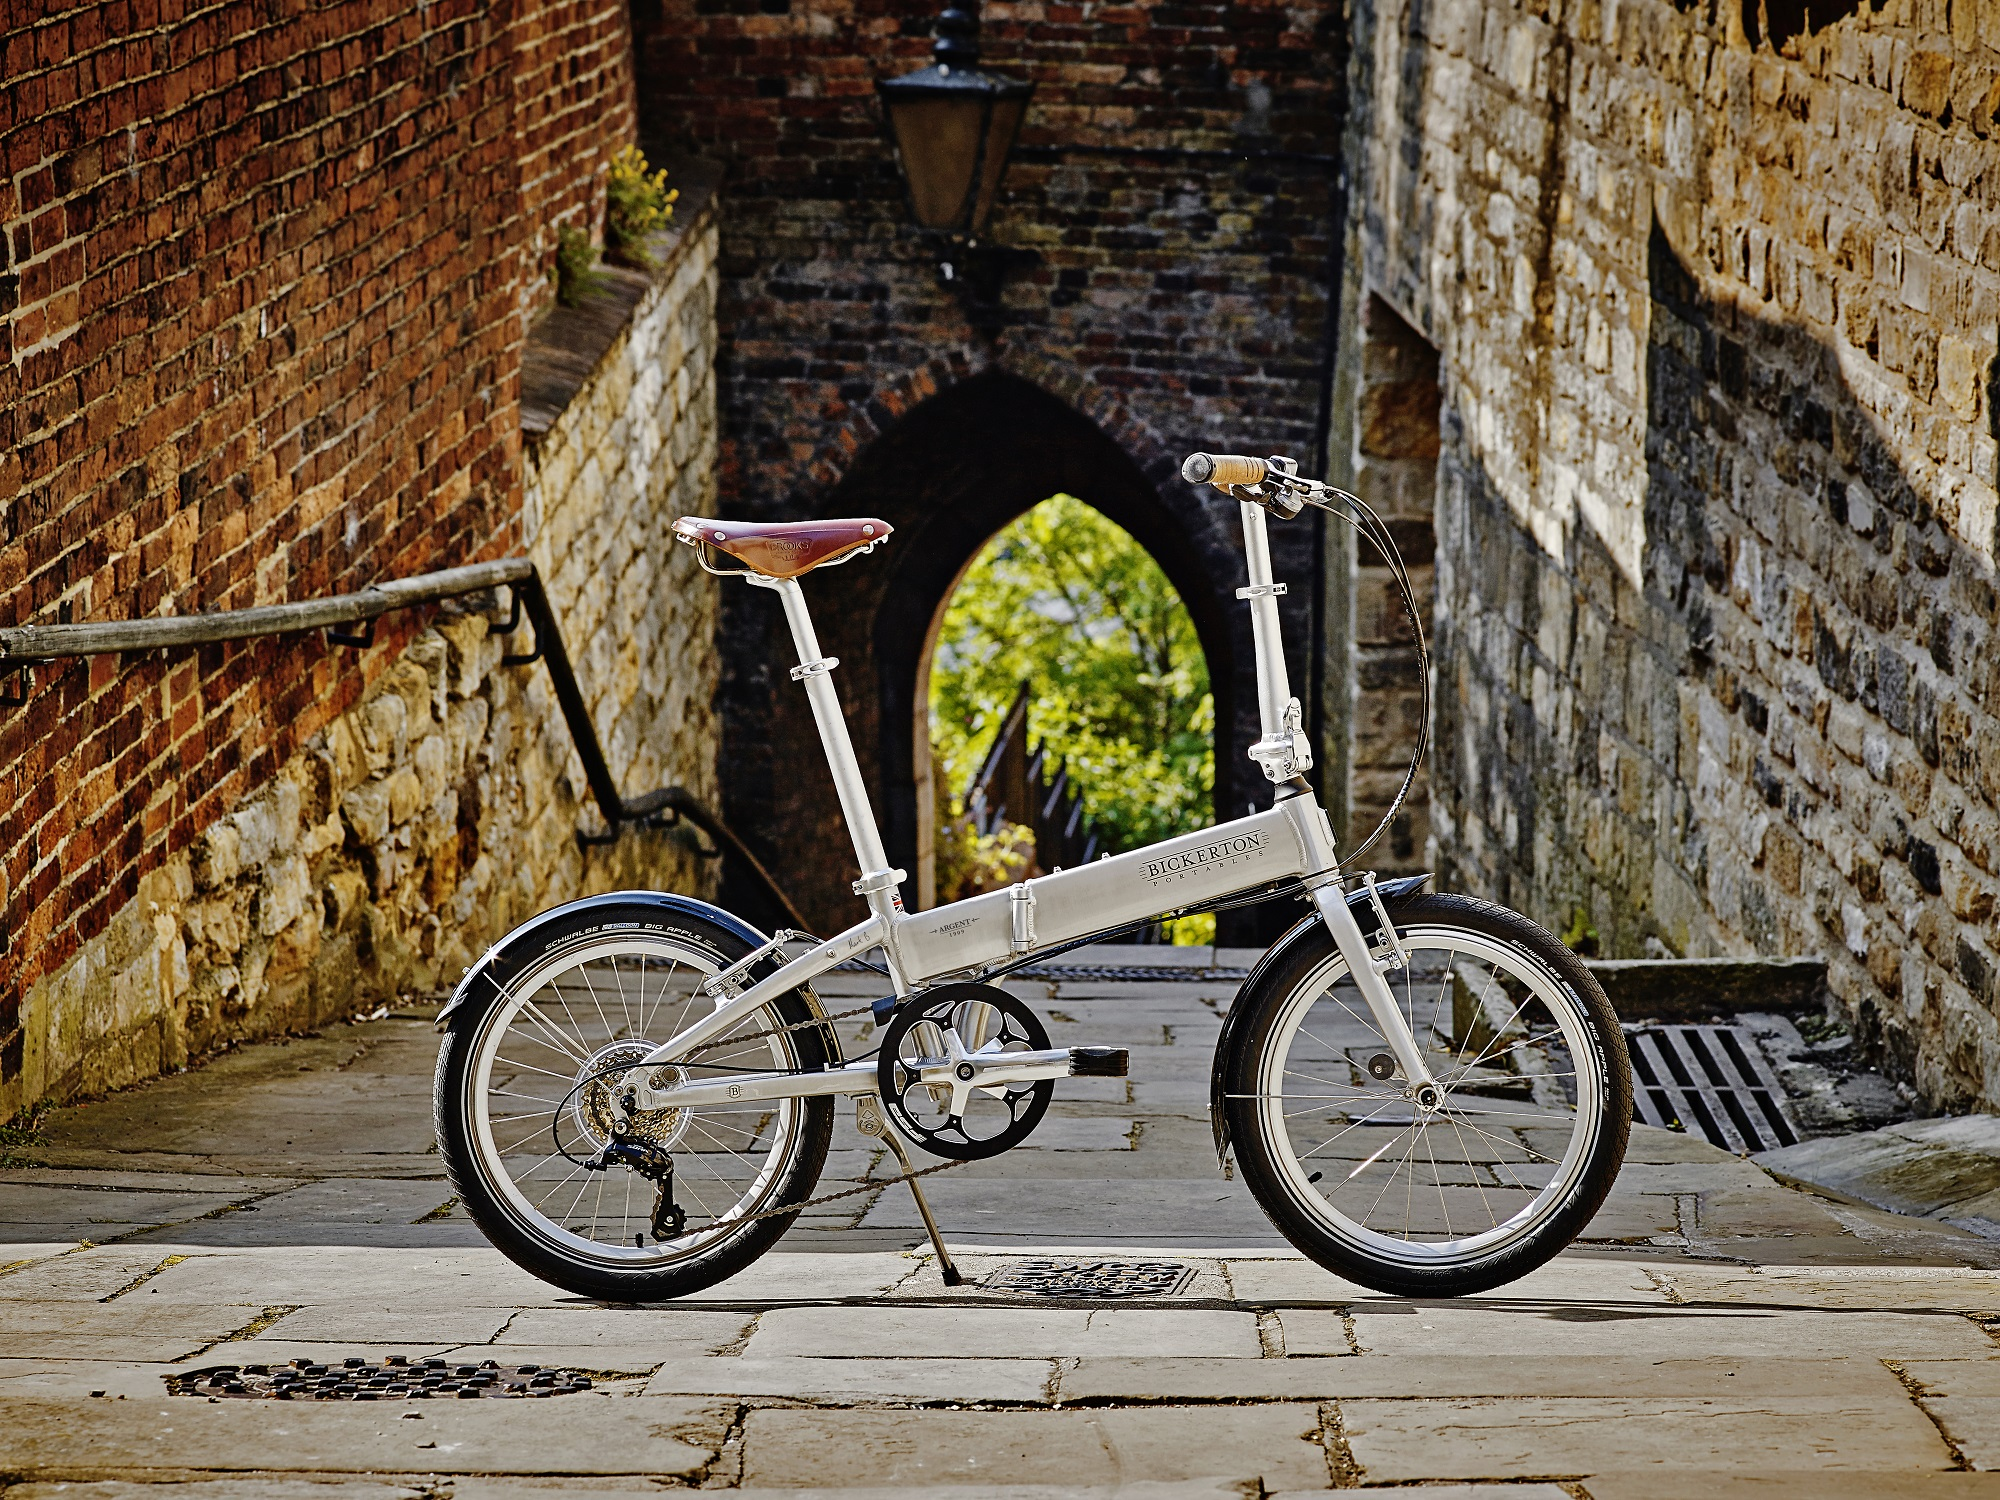 Best folding bikes 2021: these brilliant bikes won't take up too much space, but perform well on the road